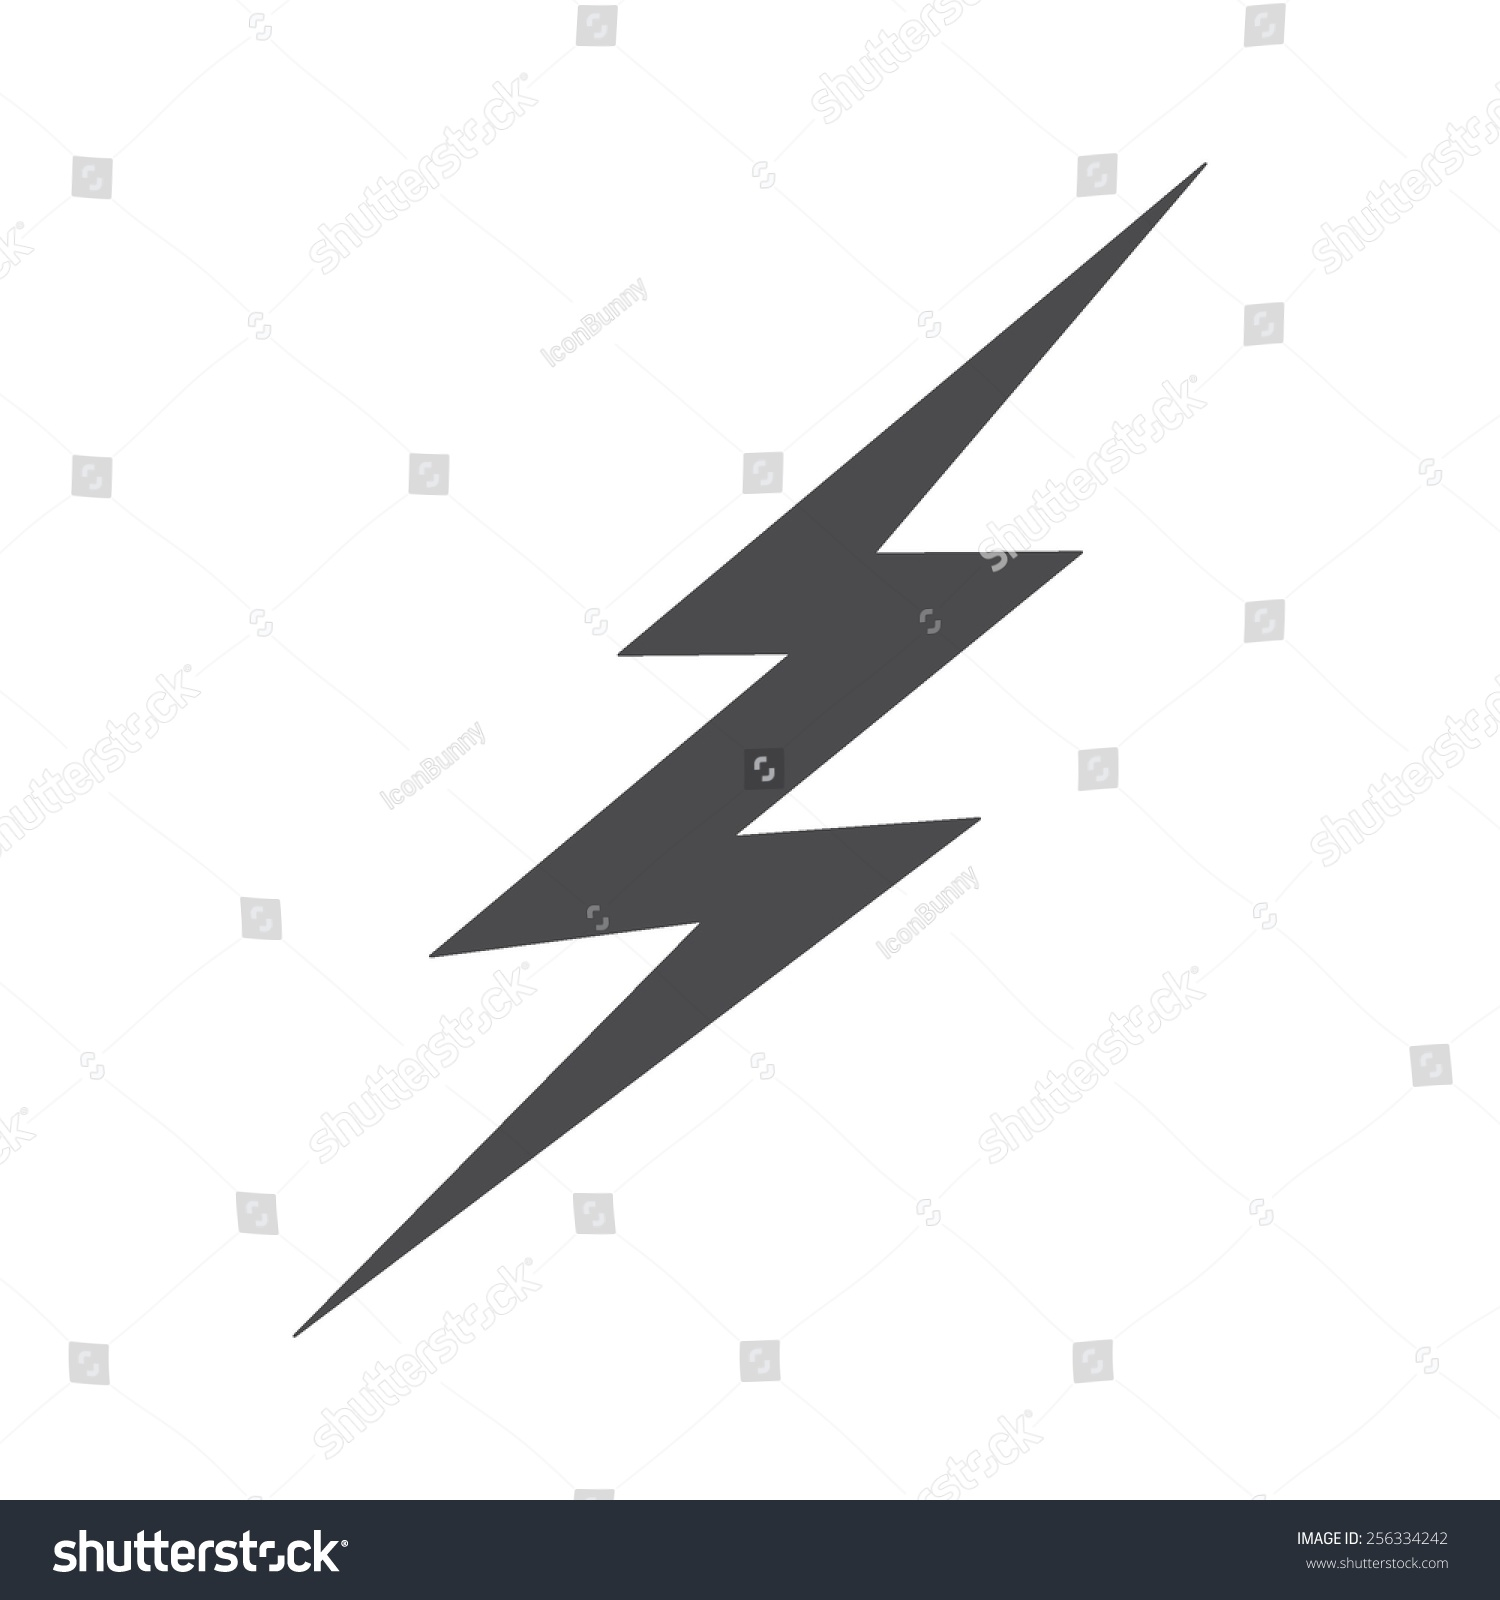 Lightning Bolt Vector Image Be Used Stock Vector 256334242 ... for Vector Lighting Bolt  585ifm